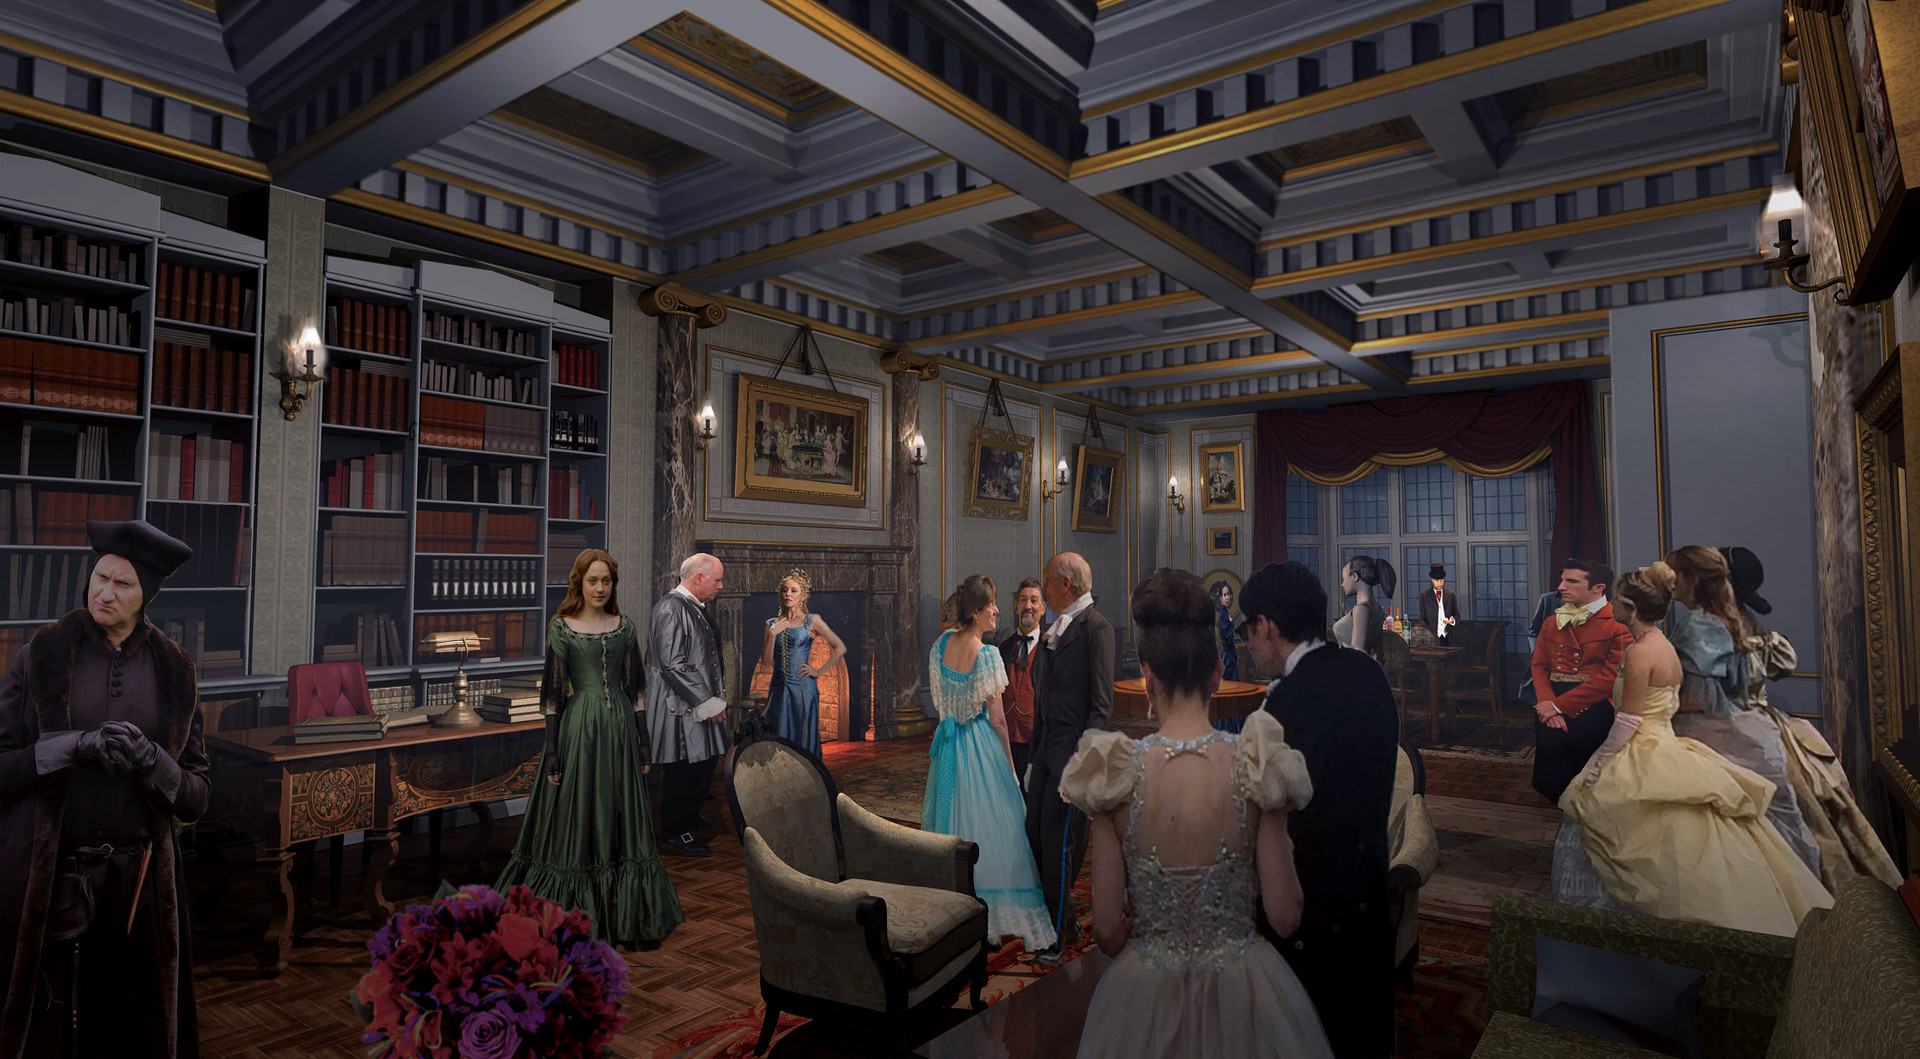 3D Victorian London Apartment Interior with 2D People Cards / Once Upon a Time Season 6